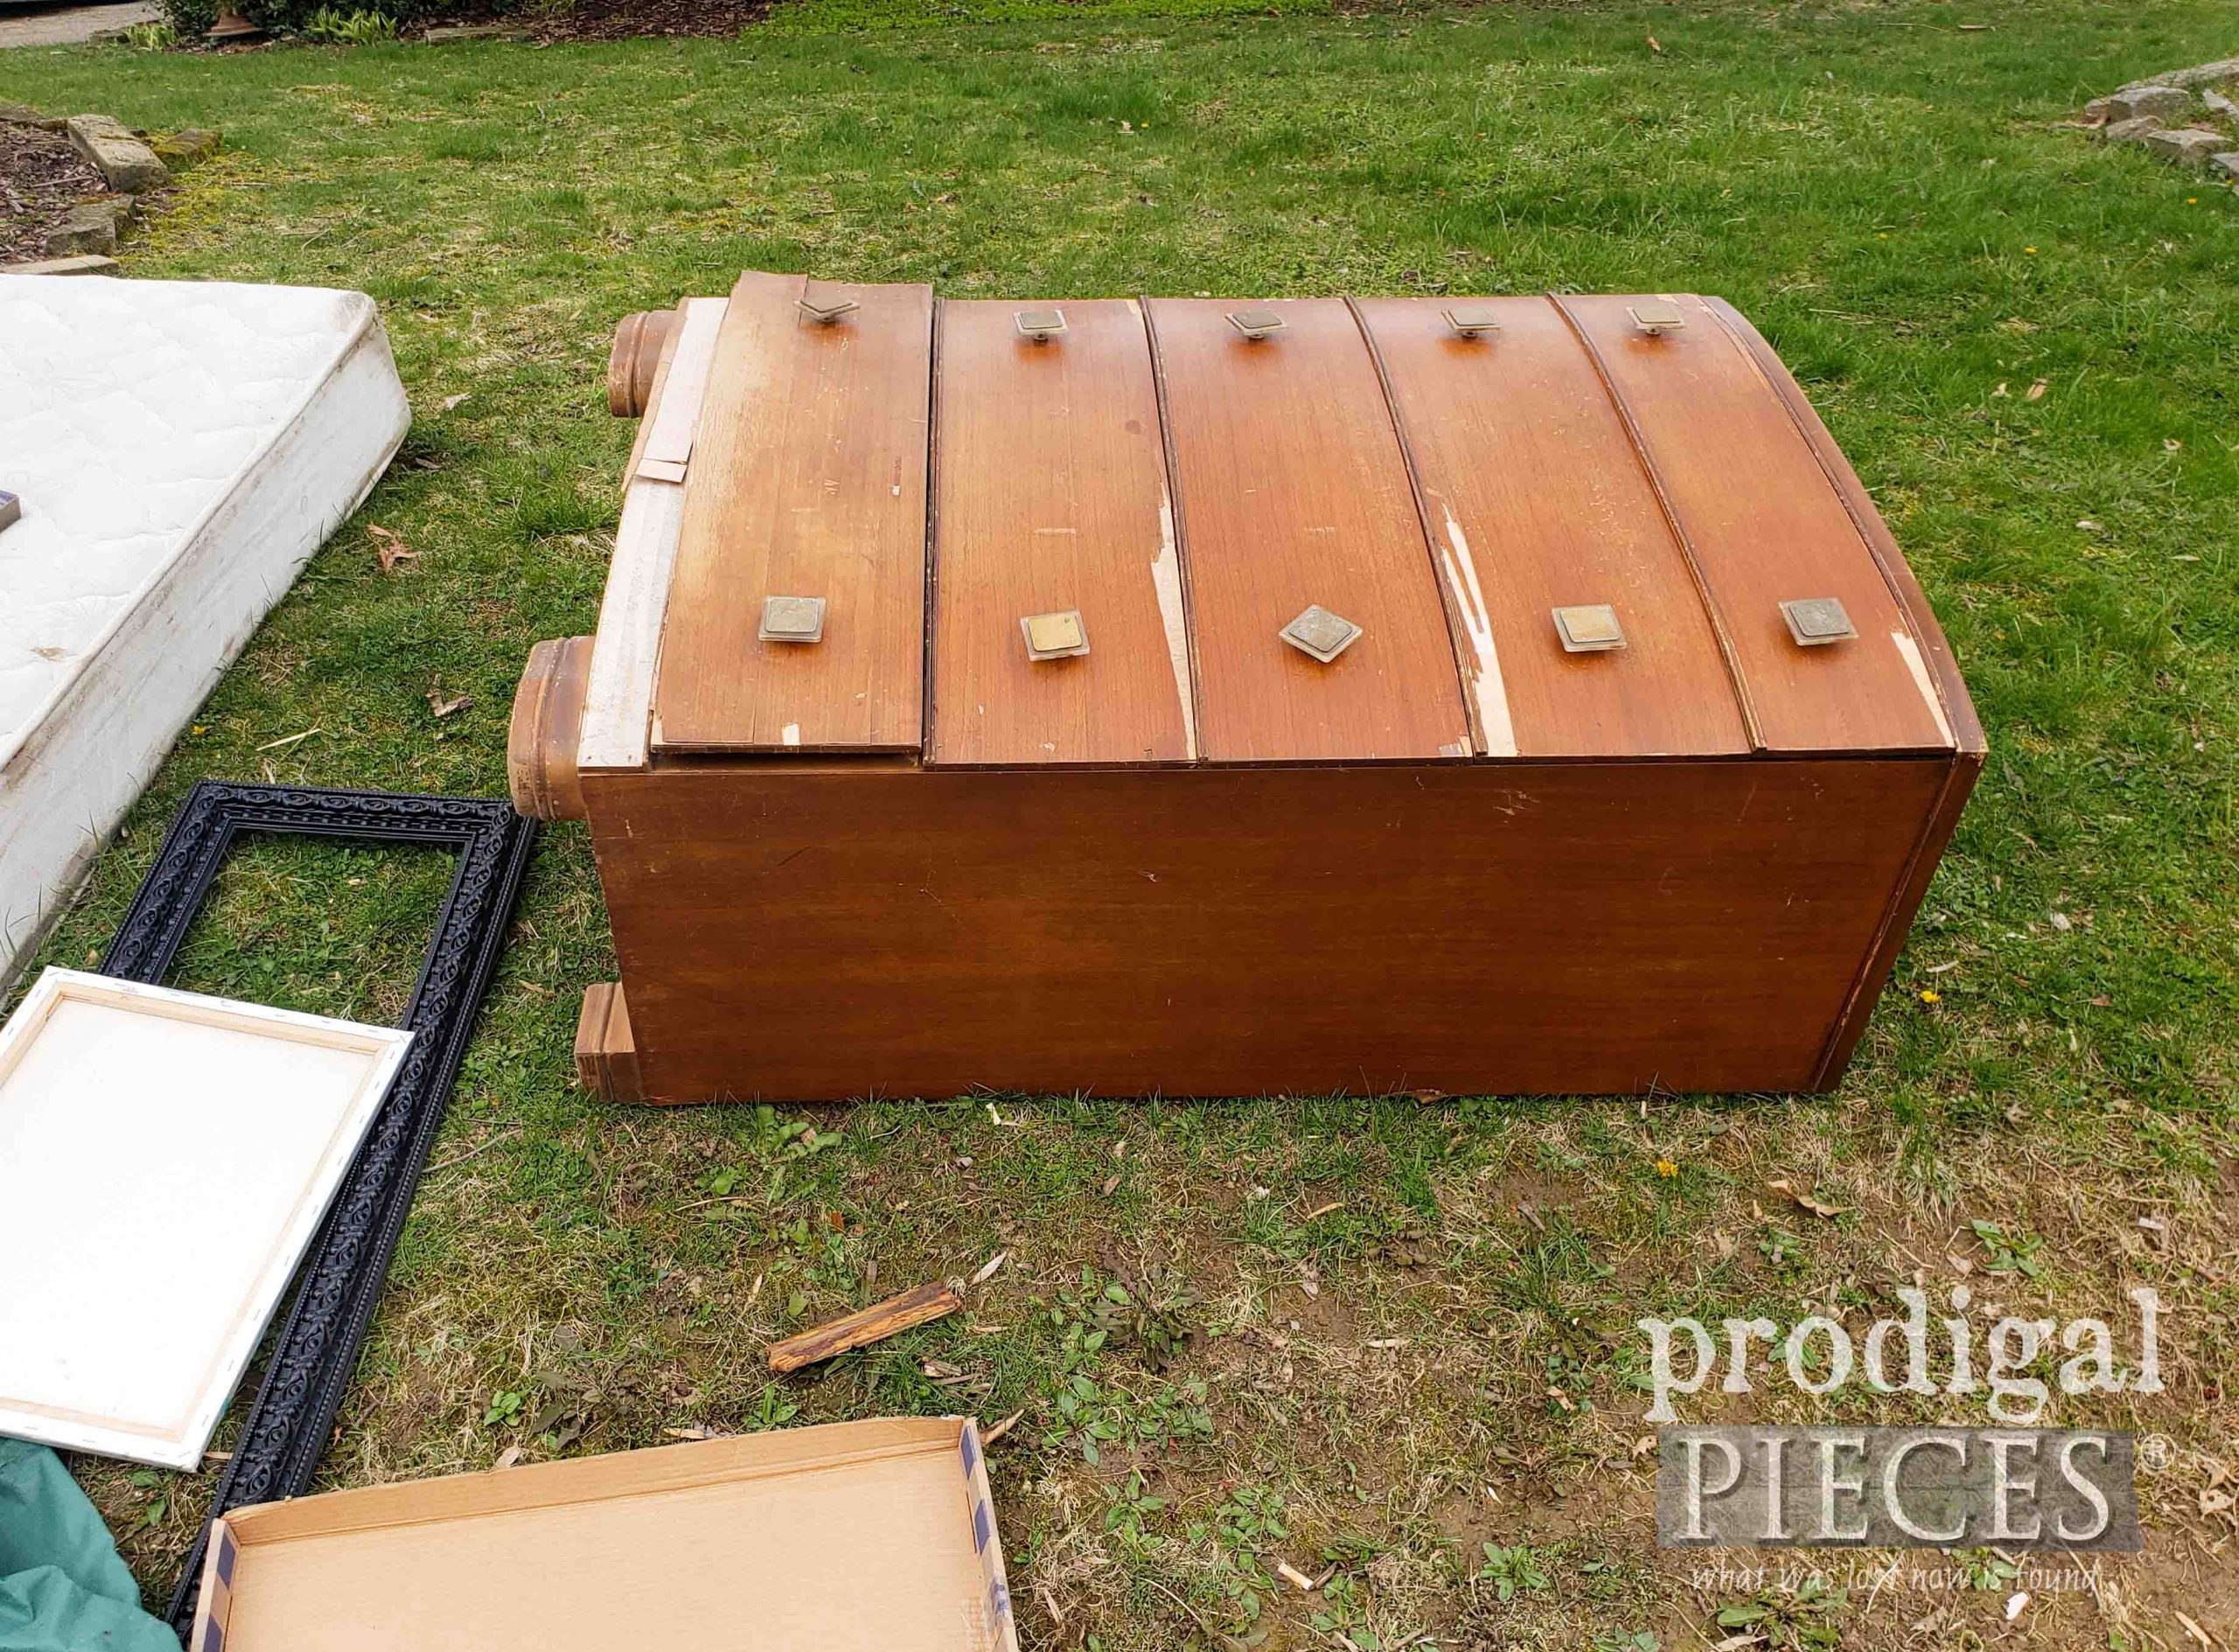 Trashed Art Deco Chest of Drawers by Larissa of Prodigal Pieces | prodigalpieces.com #prodigalpieces